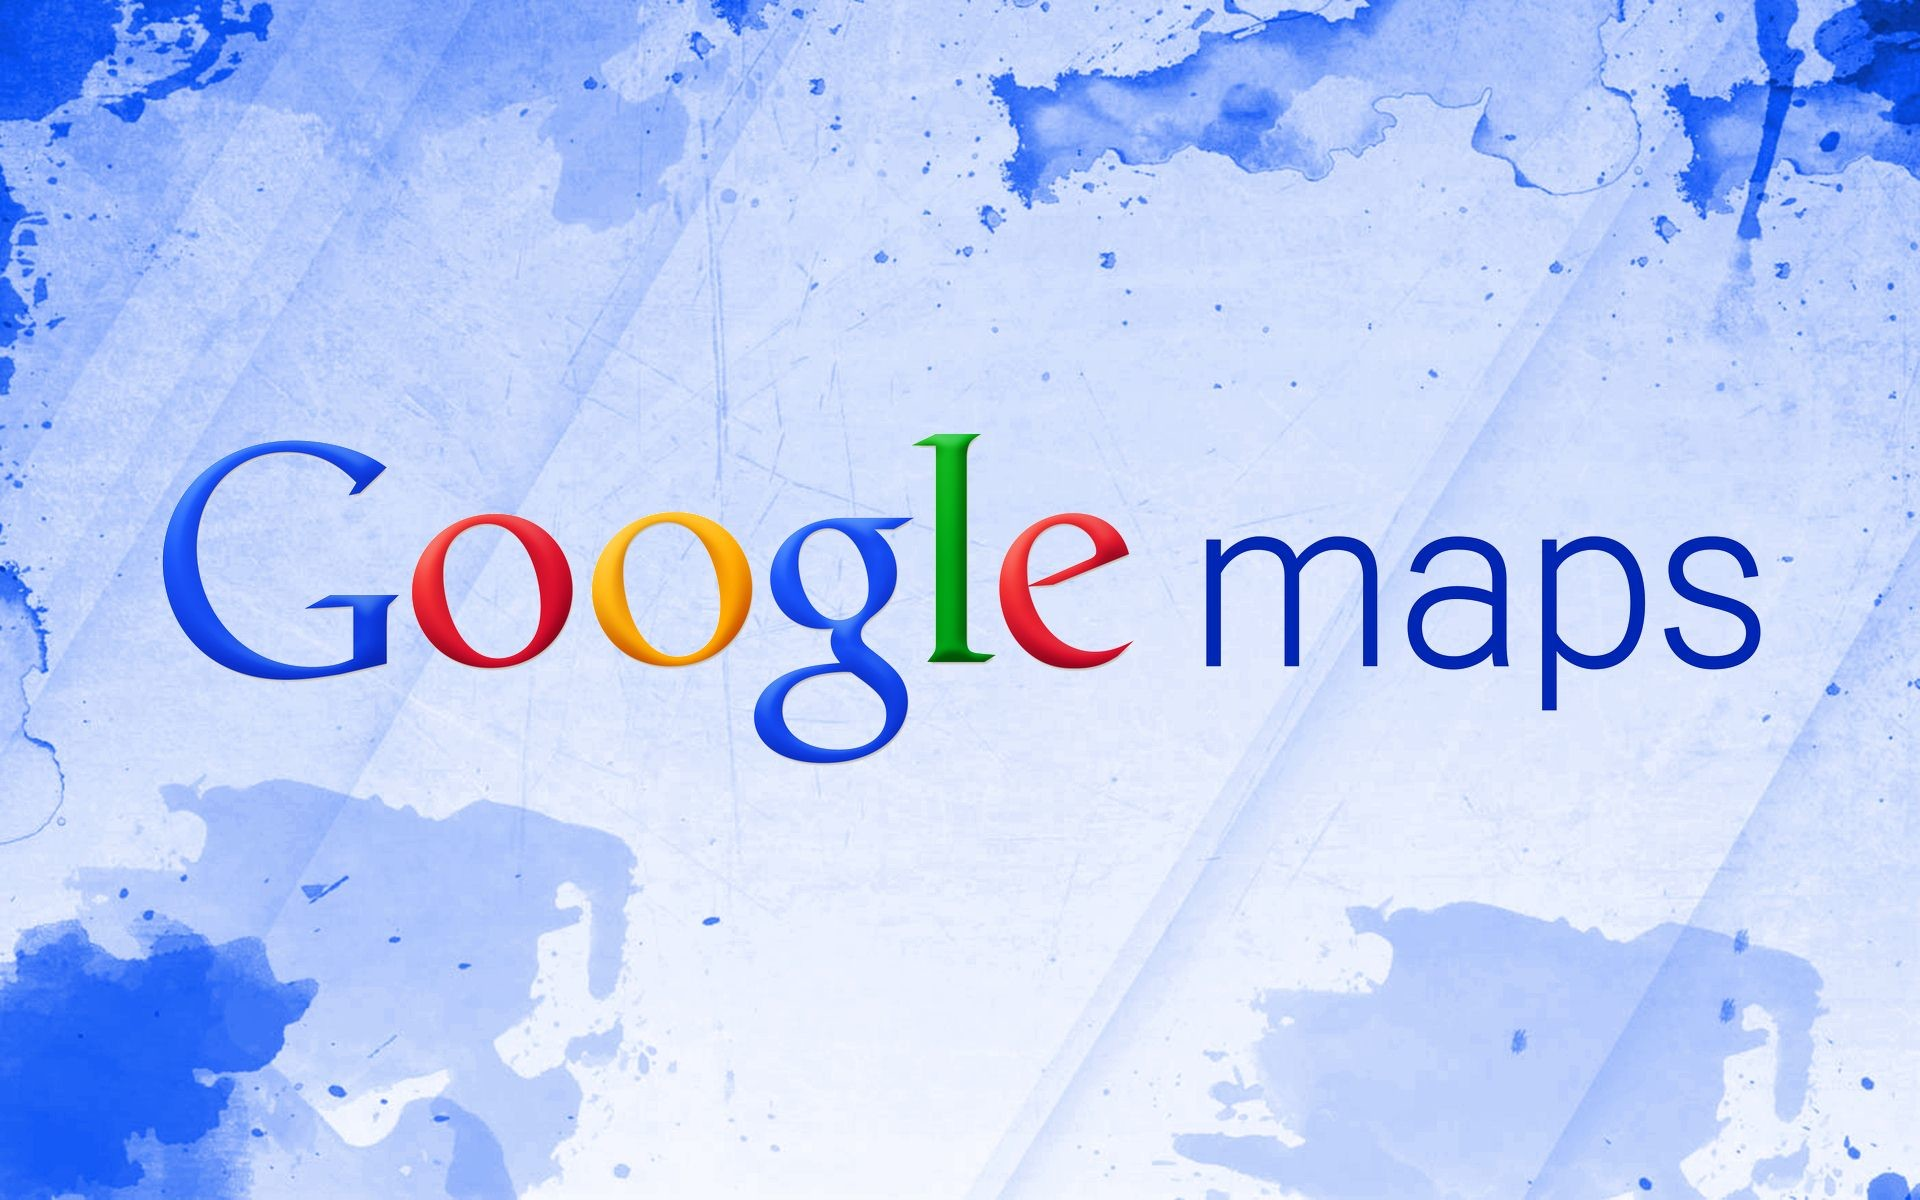 1920x1200 google maps logo wallpaper backgrounds cool images background wallpapers  smart phones samsung phone wallpapers widescreen 1080p display digital  photos ...